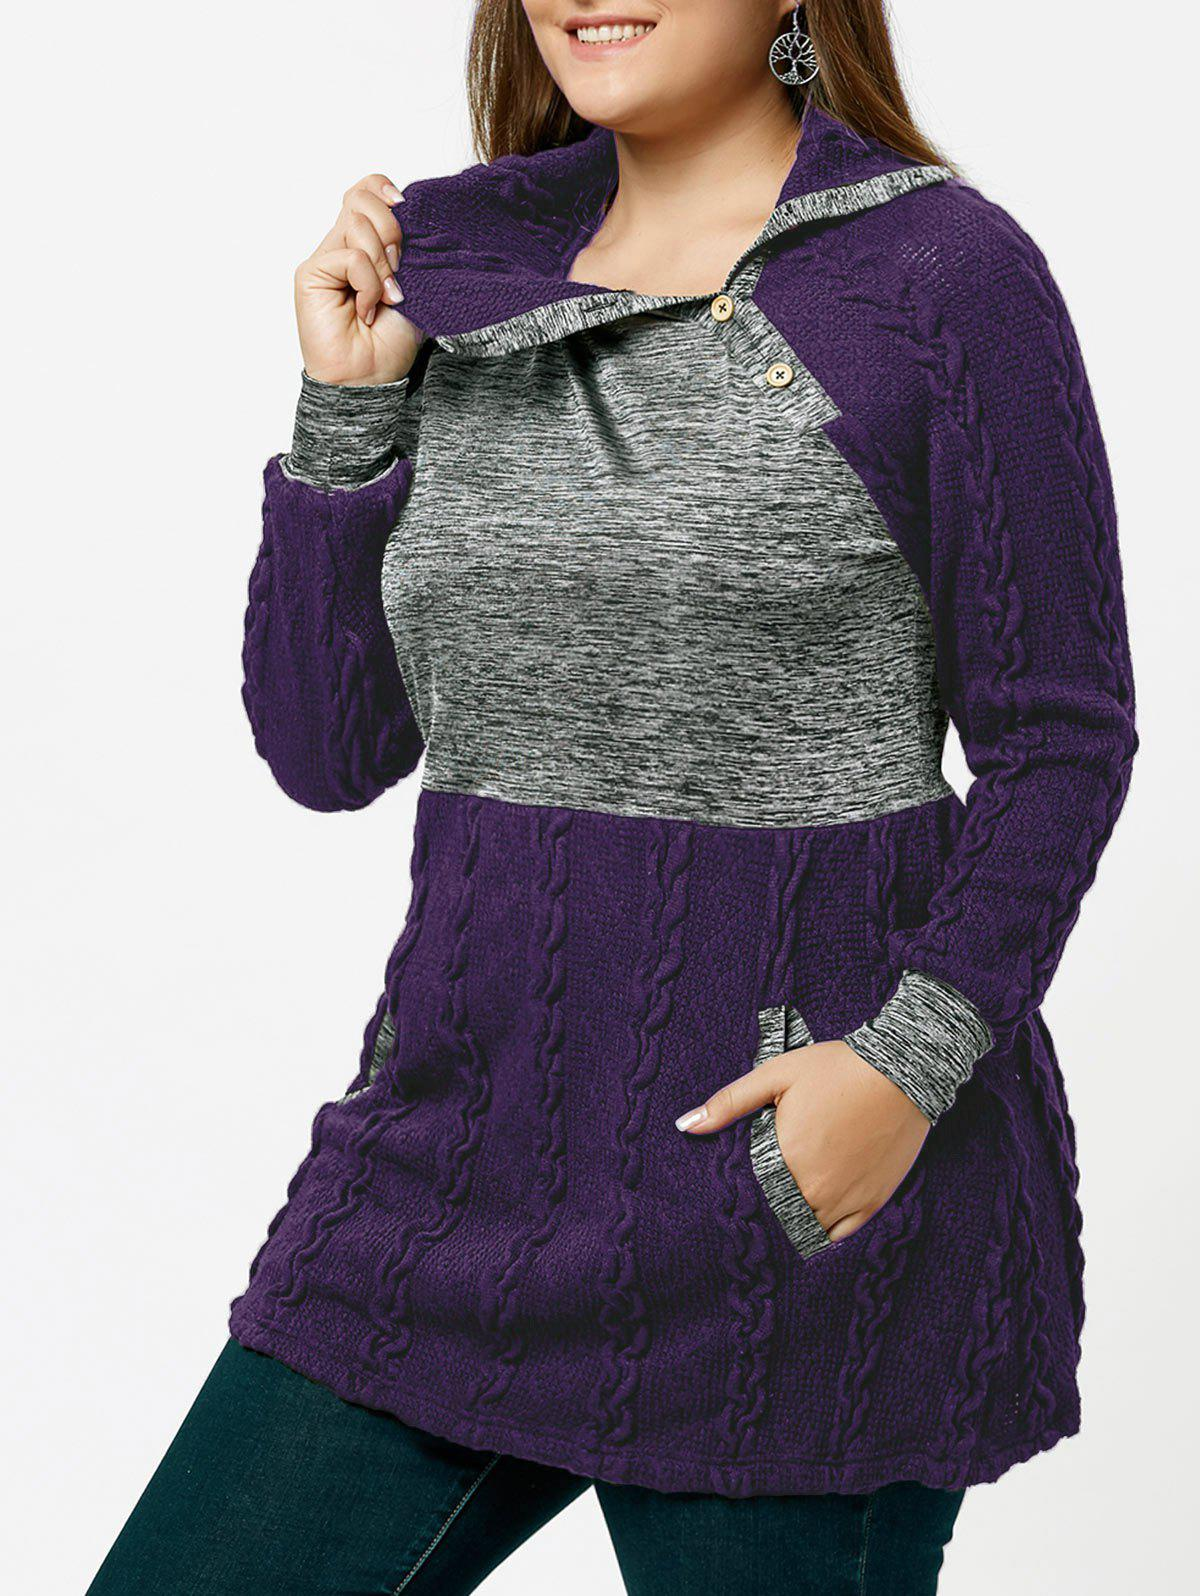 Plus Size Cable Knit Sweater with Pockets - PURPLE XL